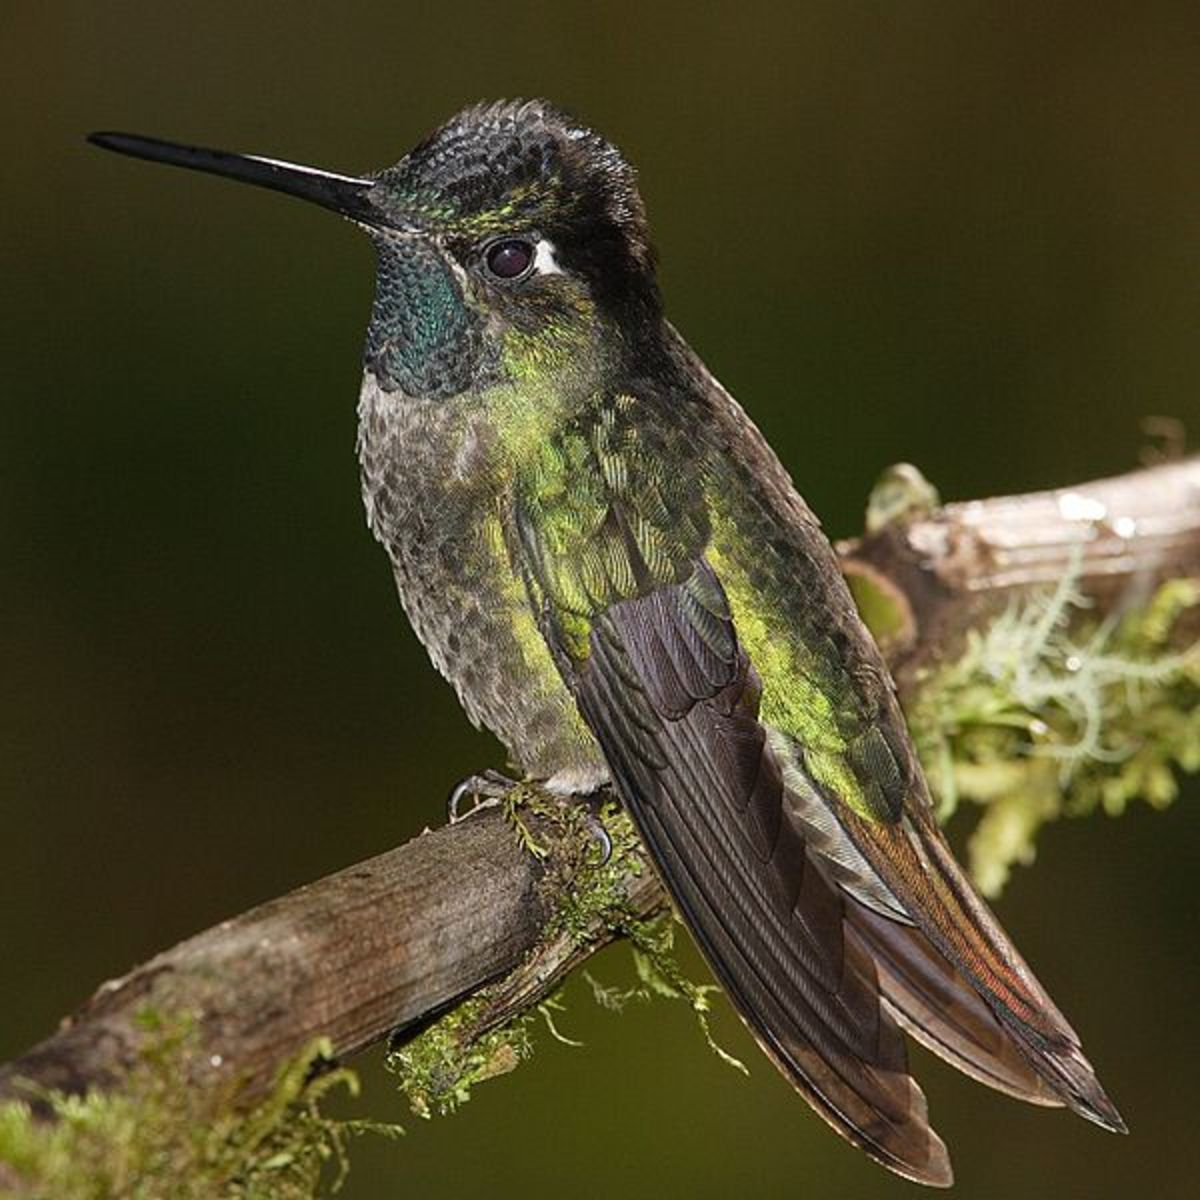 Notice the bill of the Hummingbird in this photo. It is the birds tongue that it uses for drinking nectar from flowers.